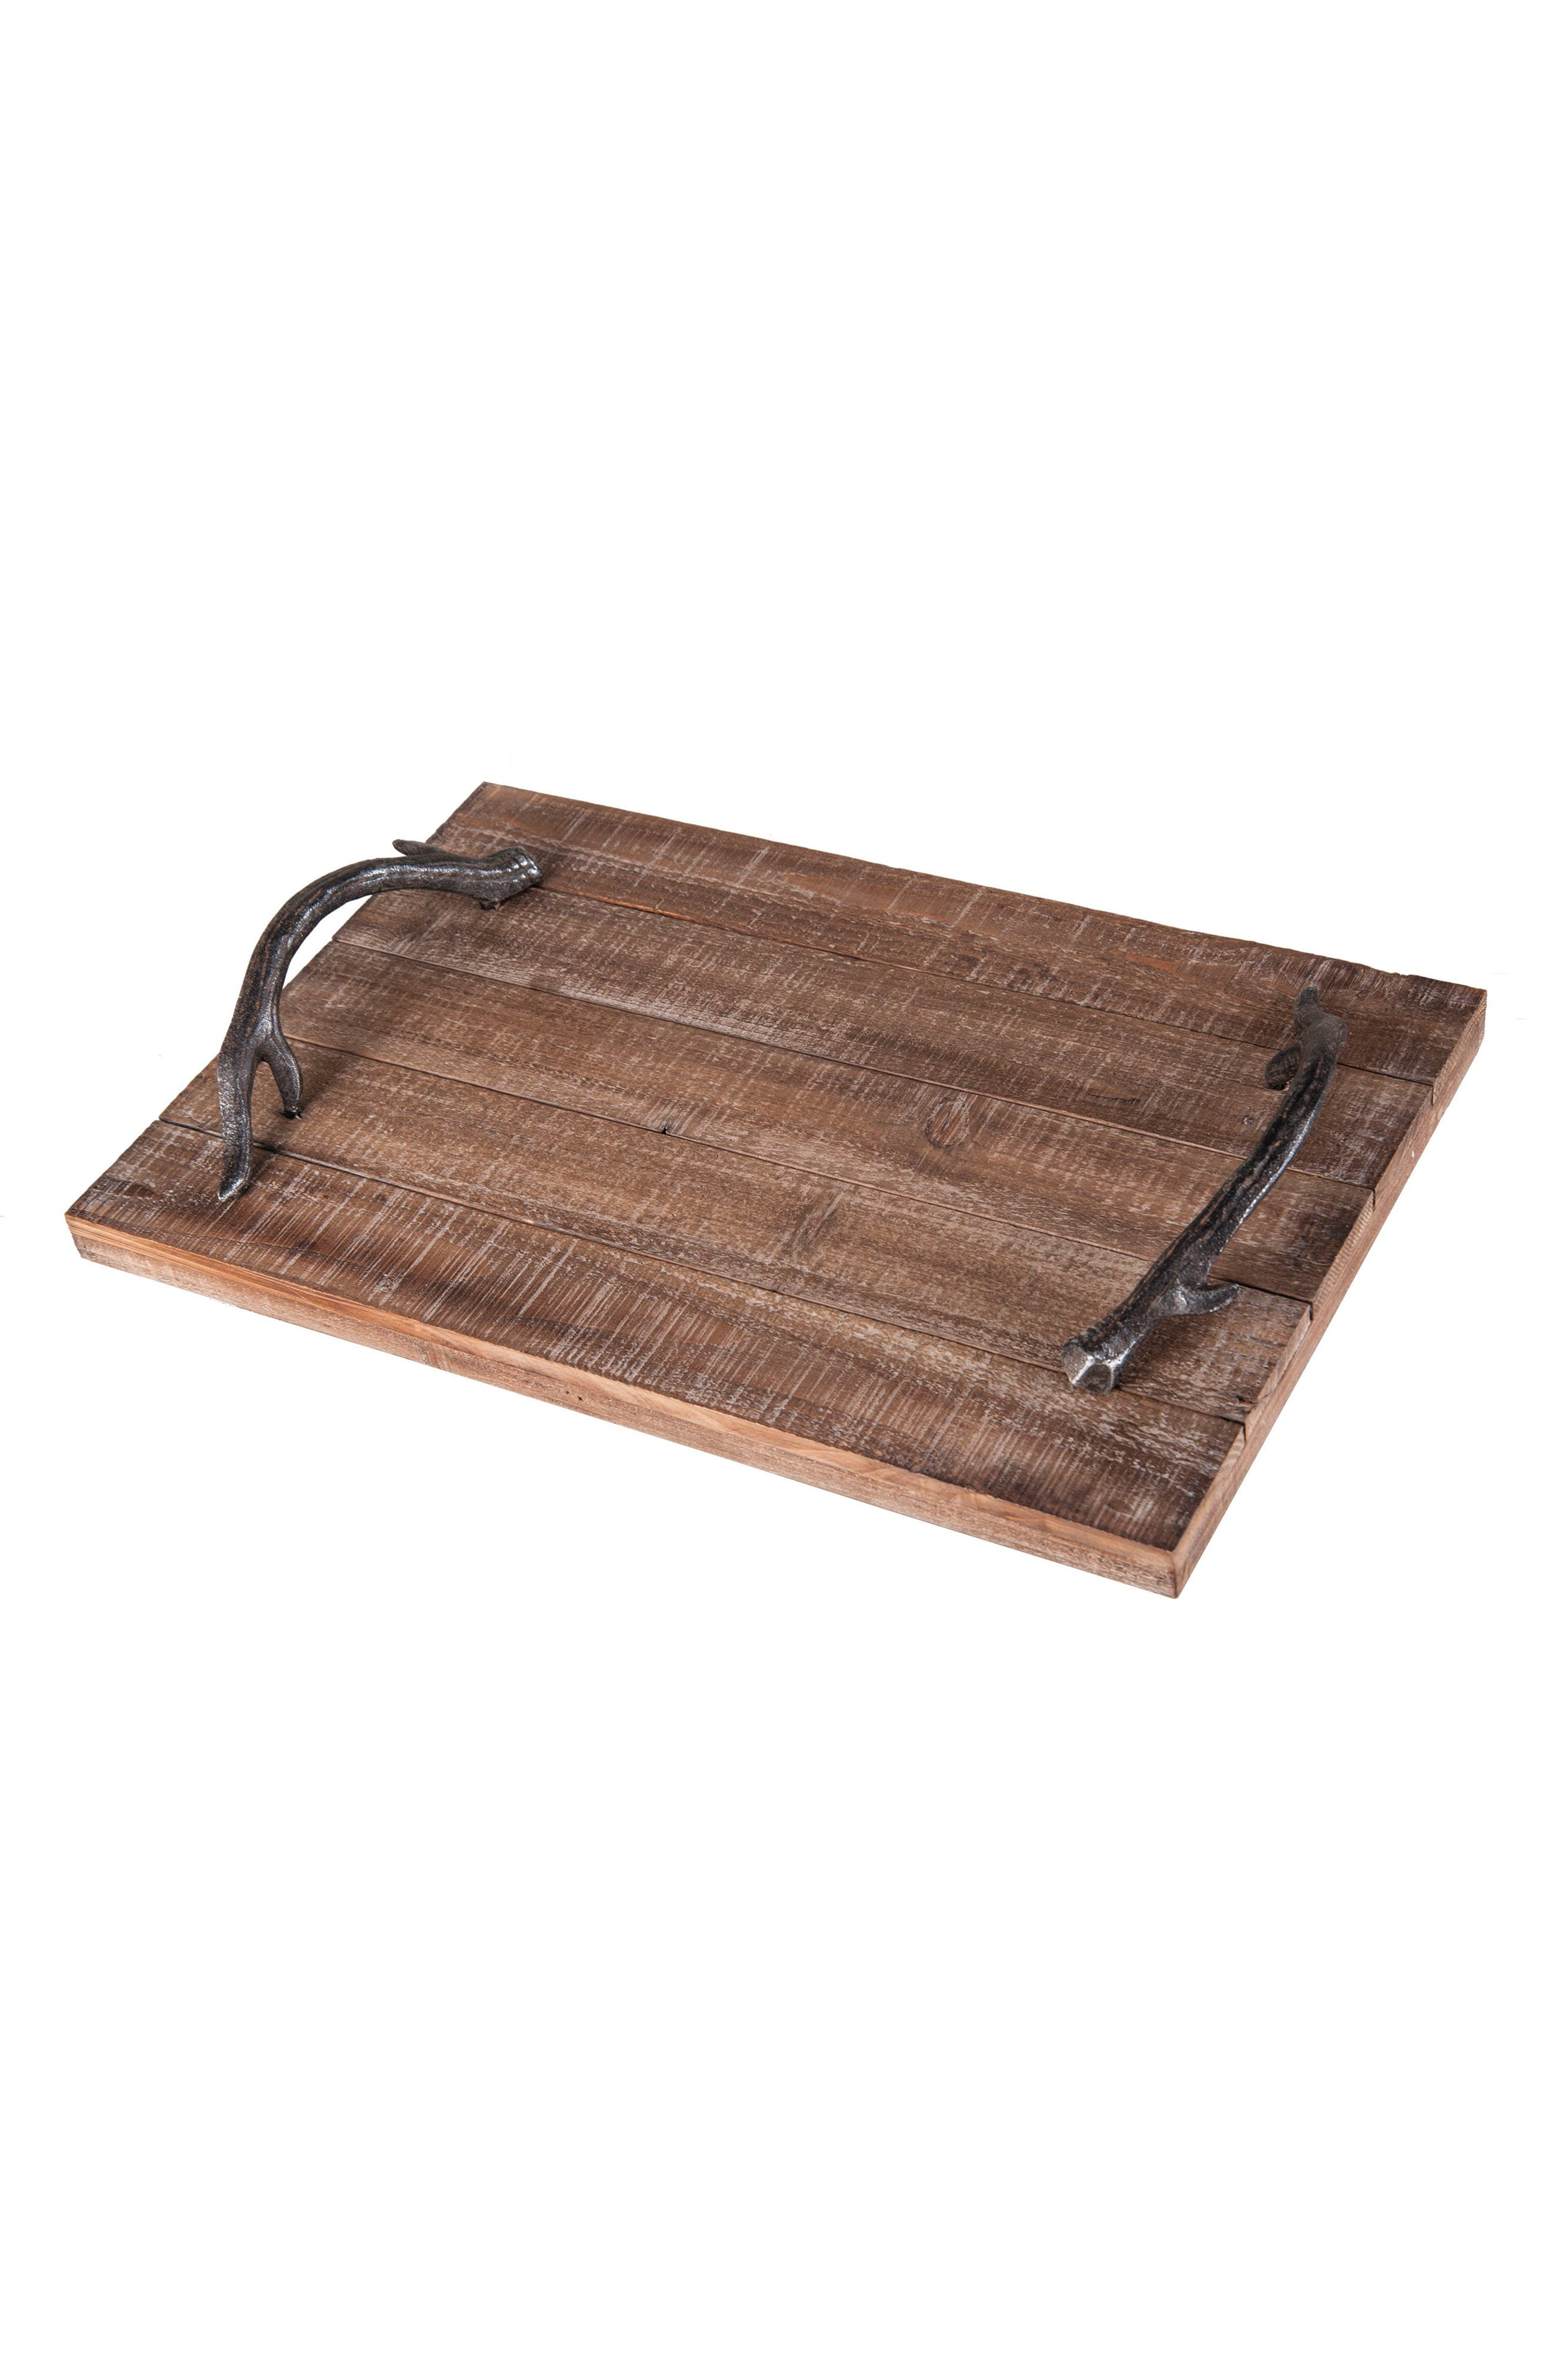 Alternate Image 1 Selected - Foreside Wood Tray